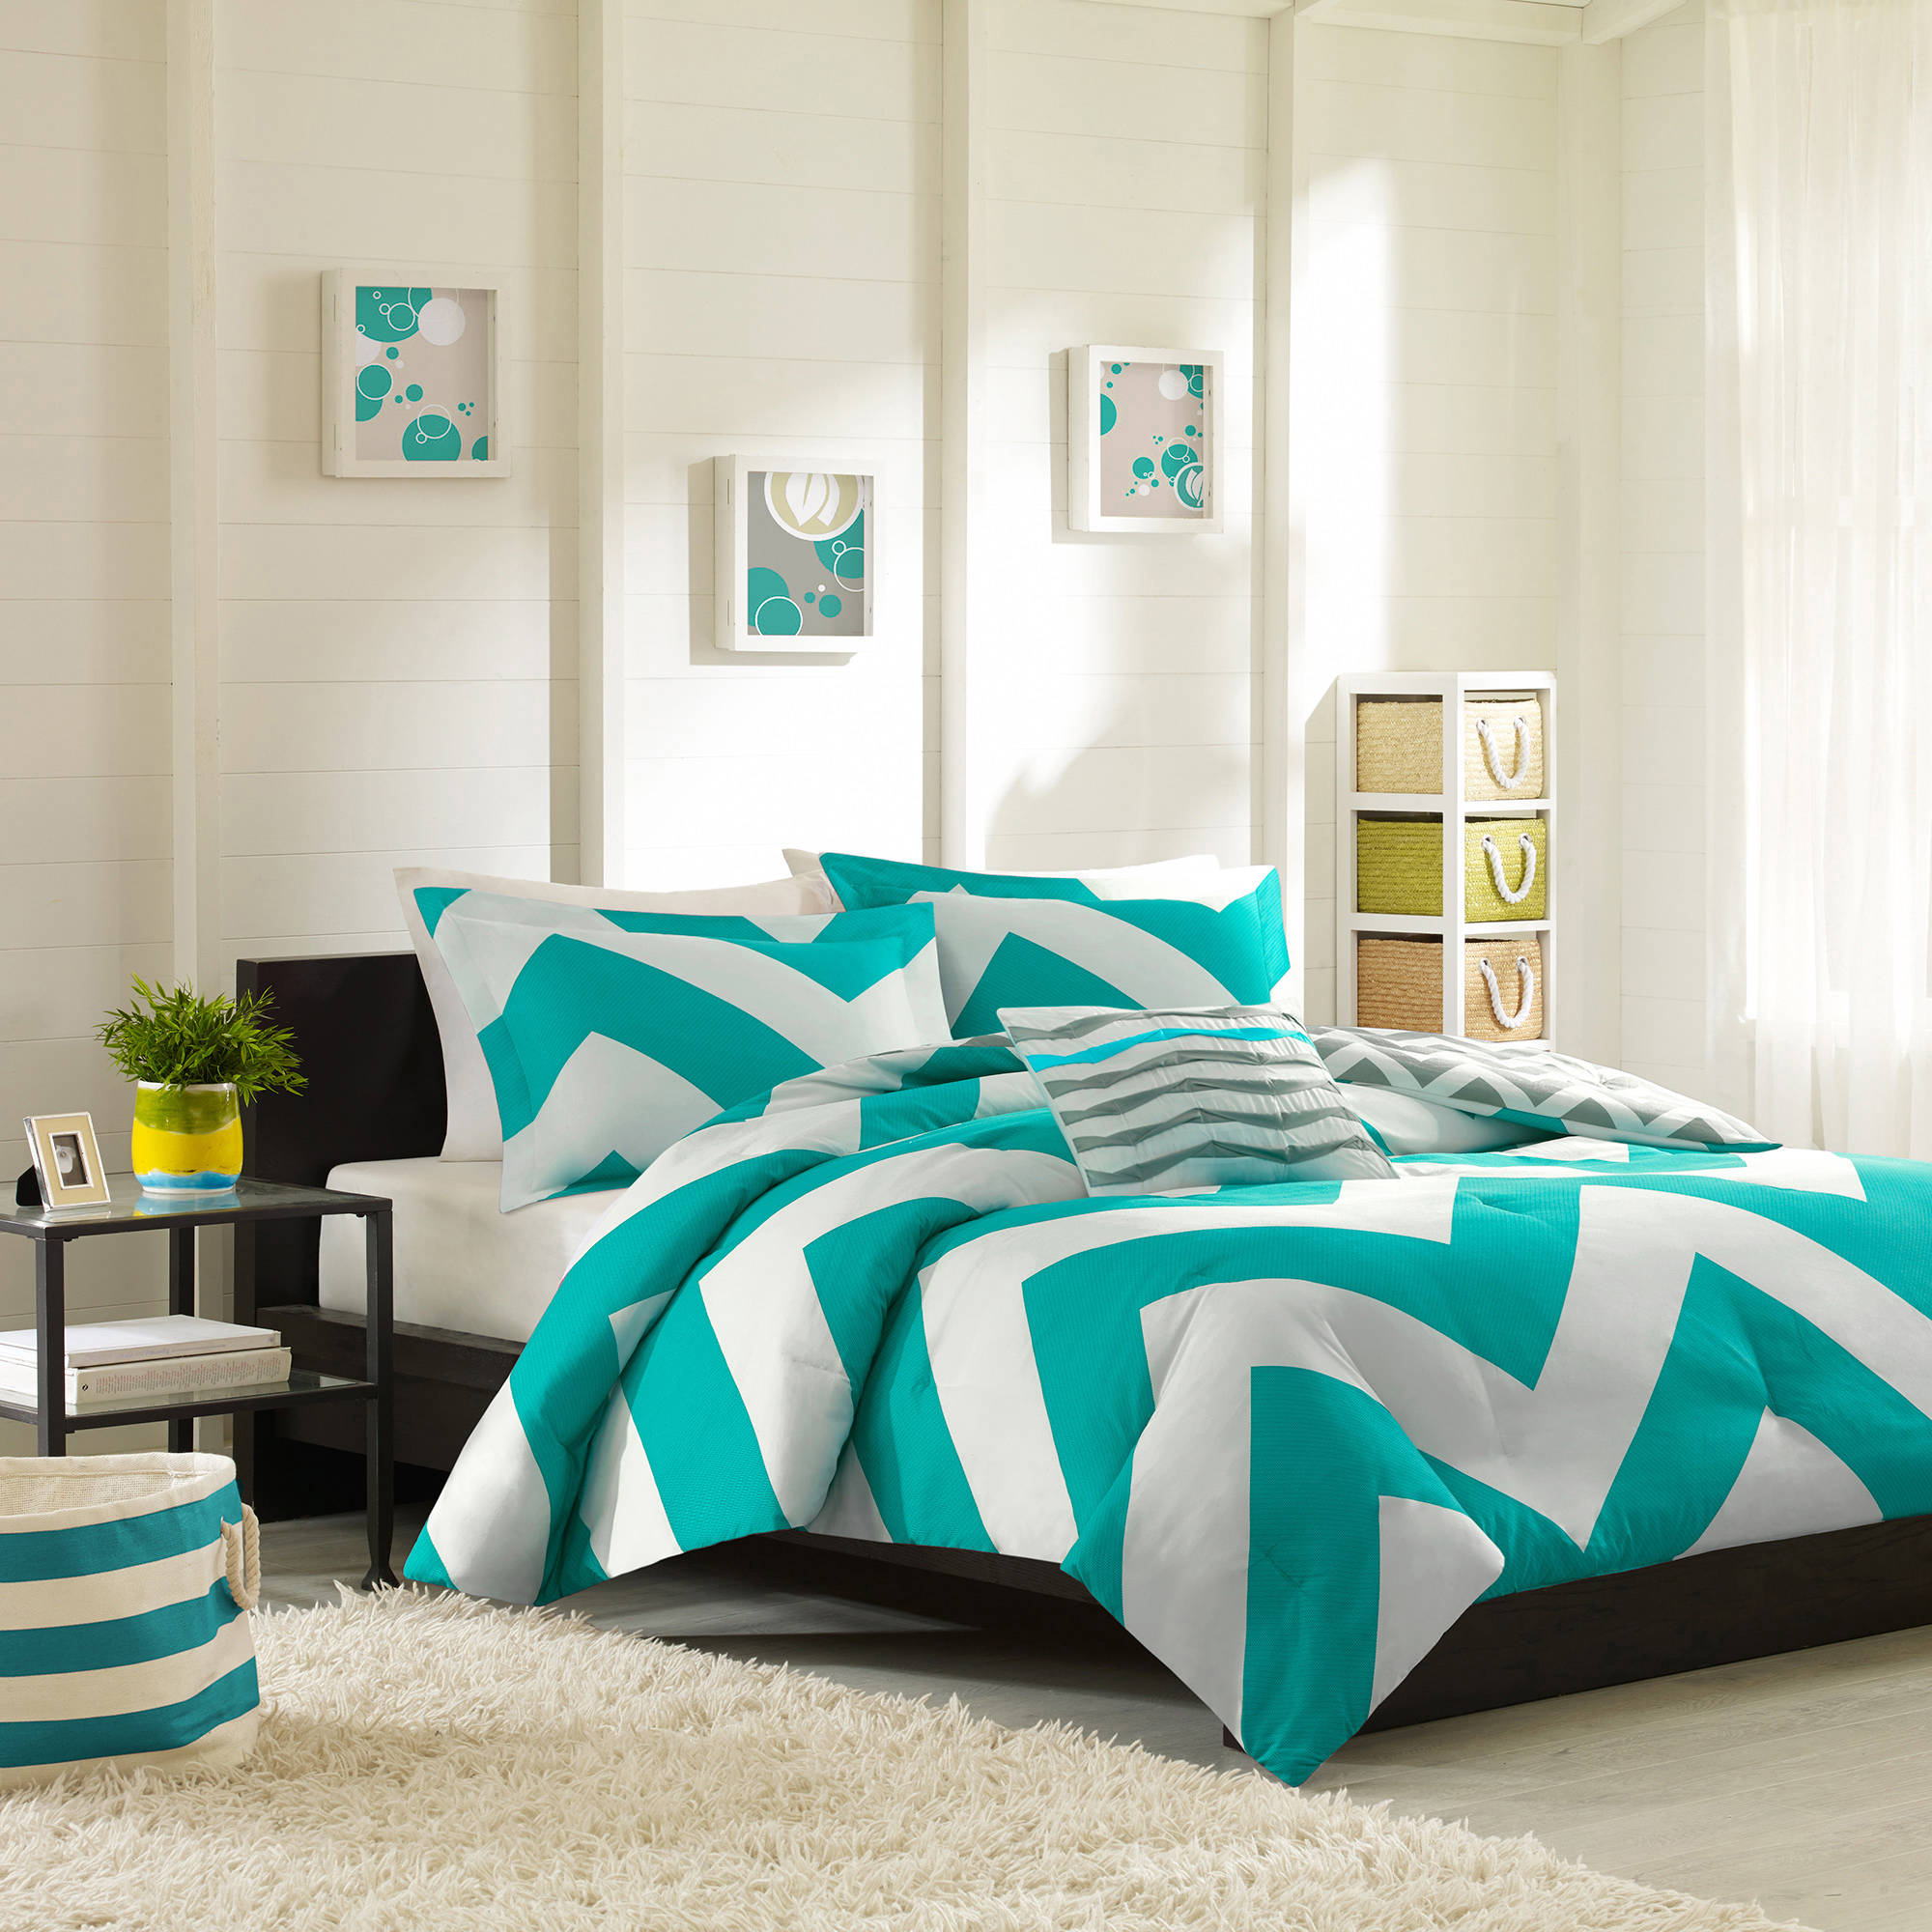 Home Essence Apartment Leo Bedding Comforter Set